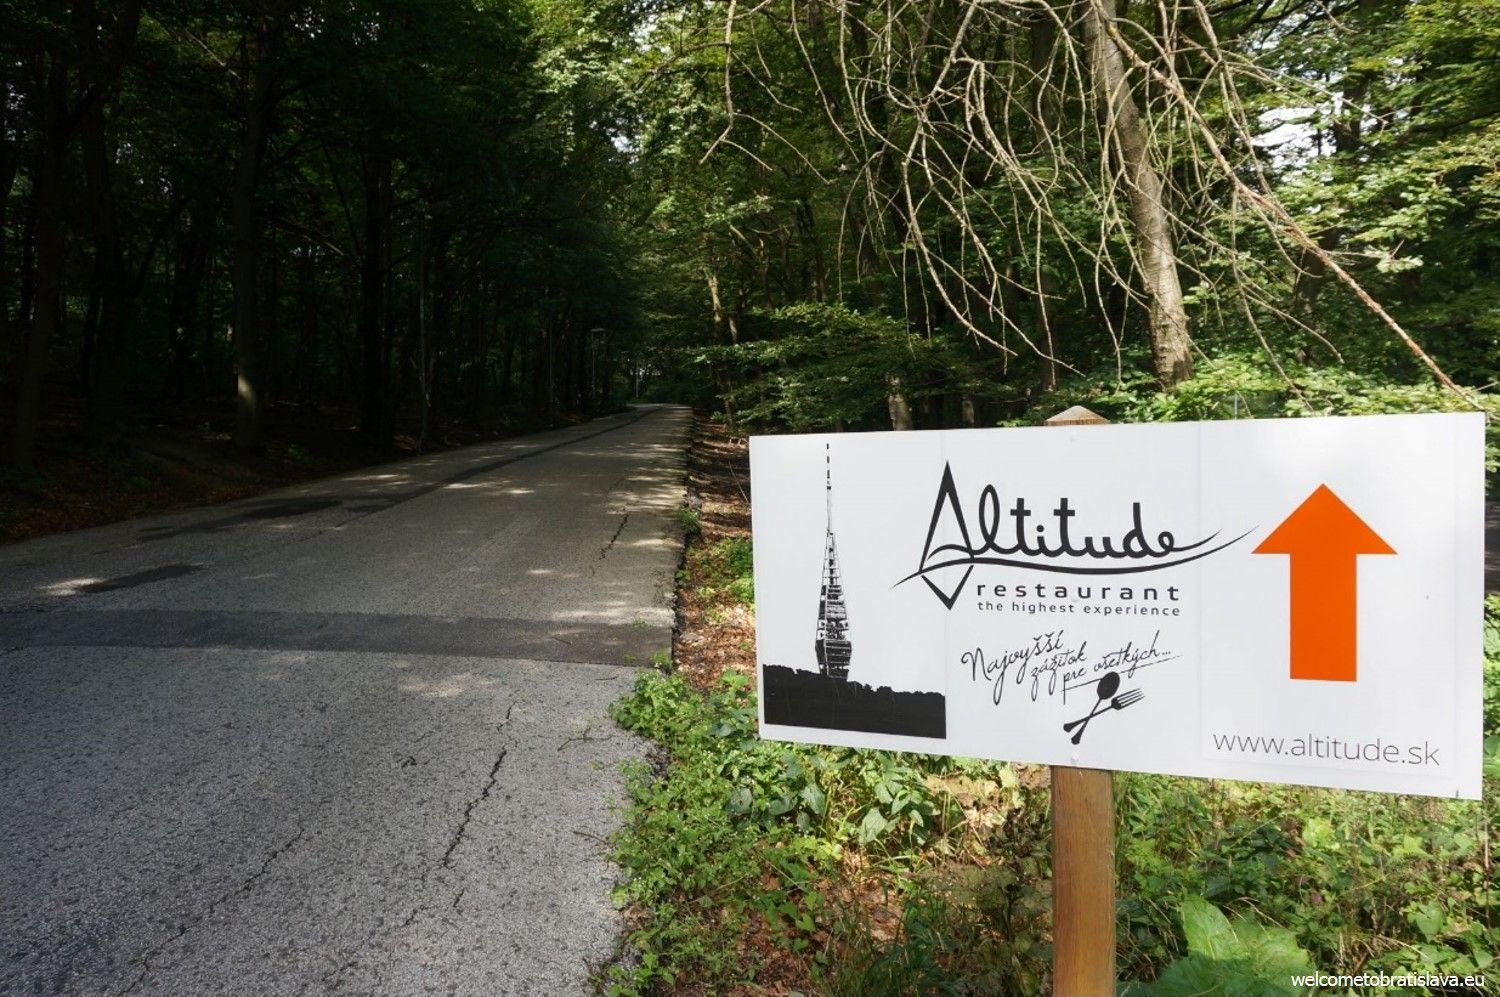 You will come to another crossroad on your way. Again, keep left, following the Altitude sign (right picture).